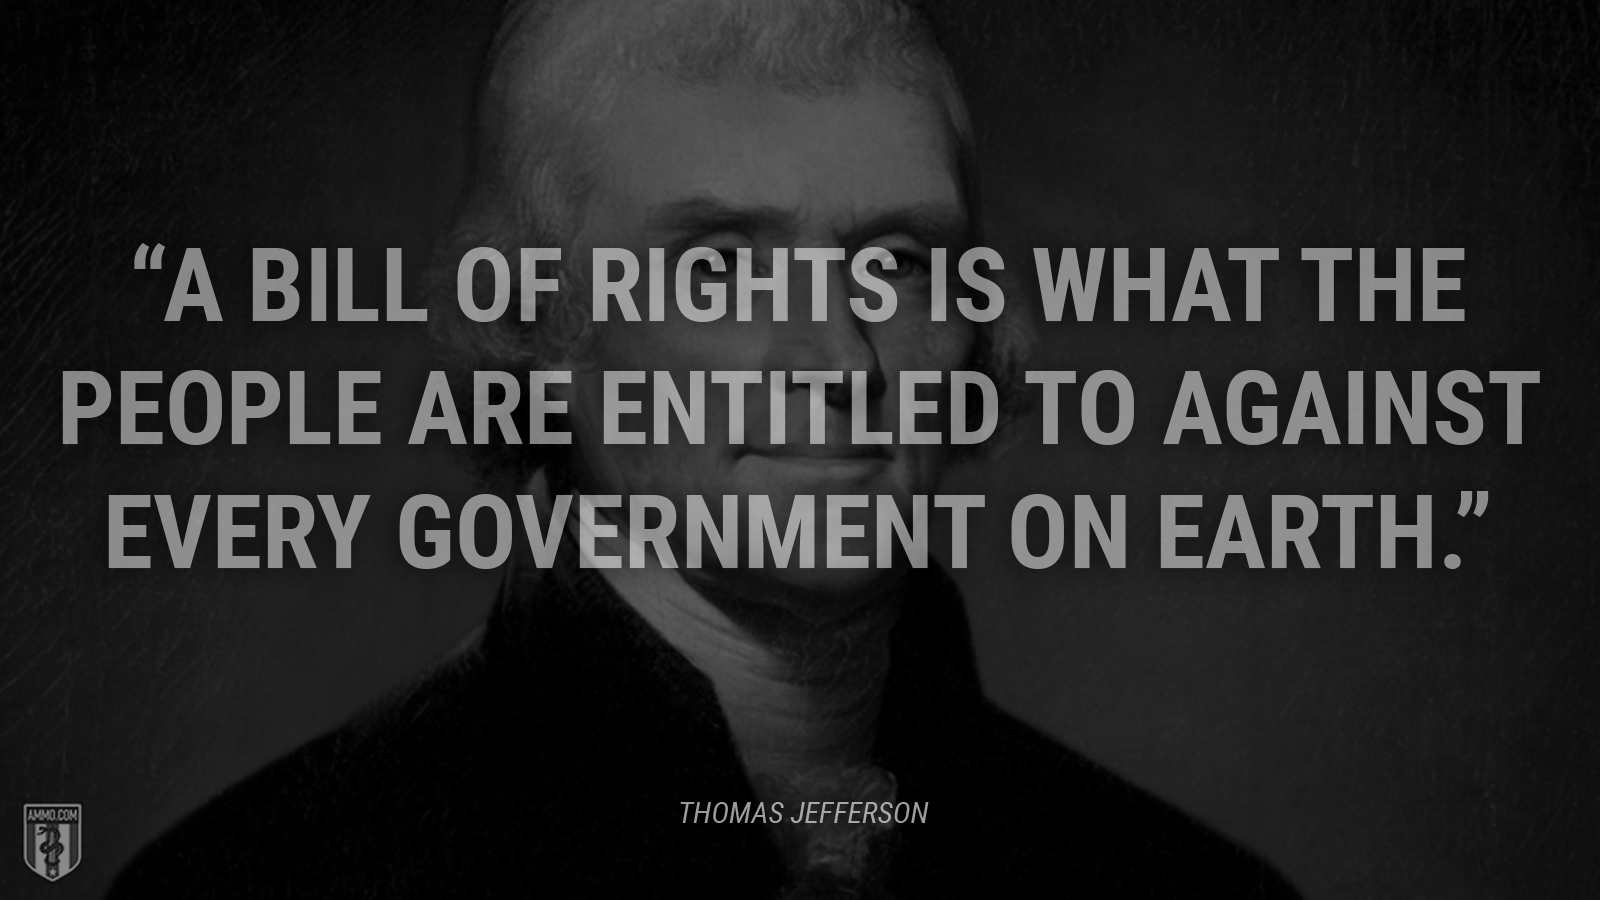 """A bill of rights is what the people are entitled to against every government on earth."" - Thomas Jefferson"